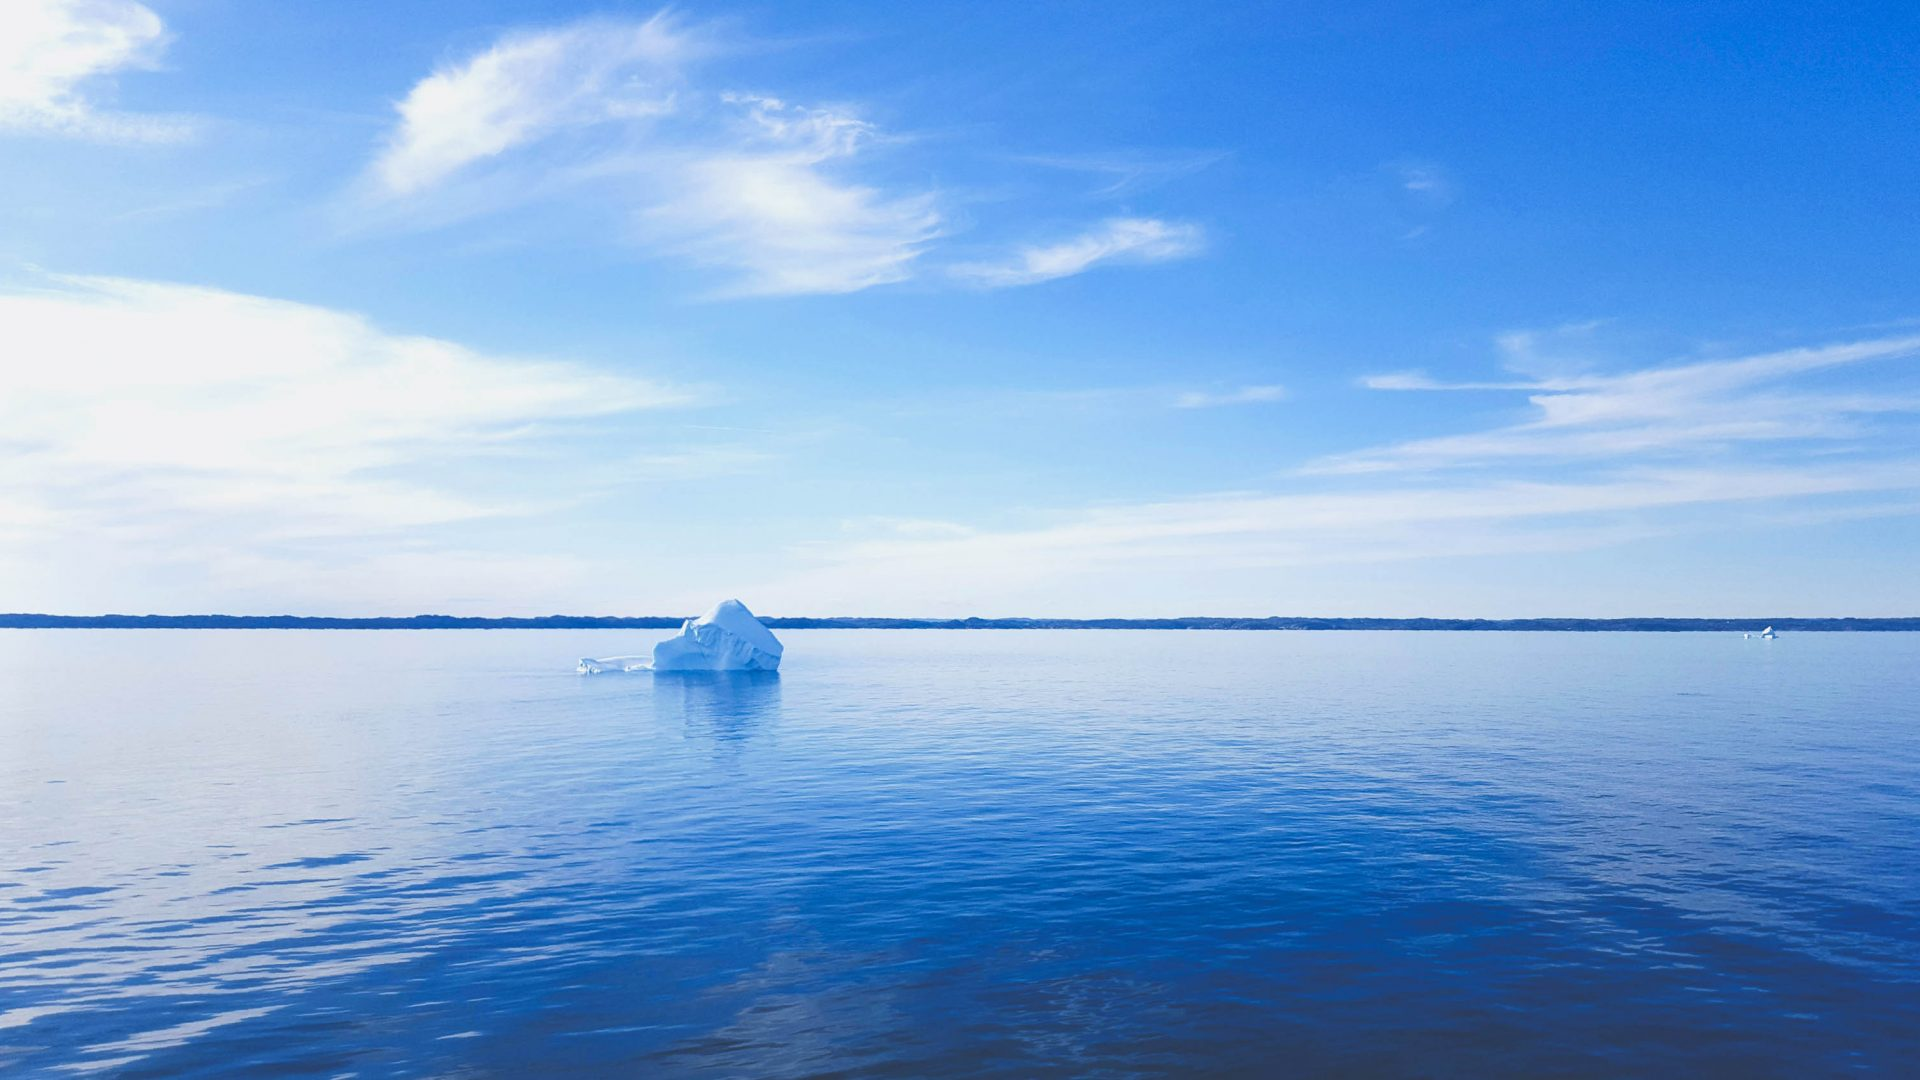 A lone iceberg in the water on the St. Lawrence River in Quebec.